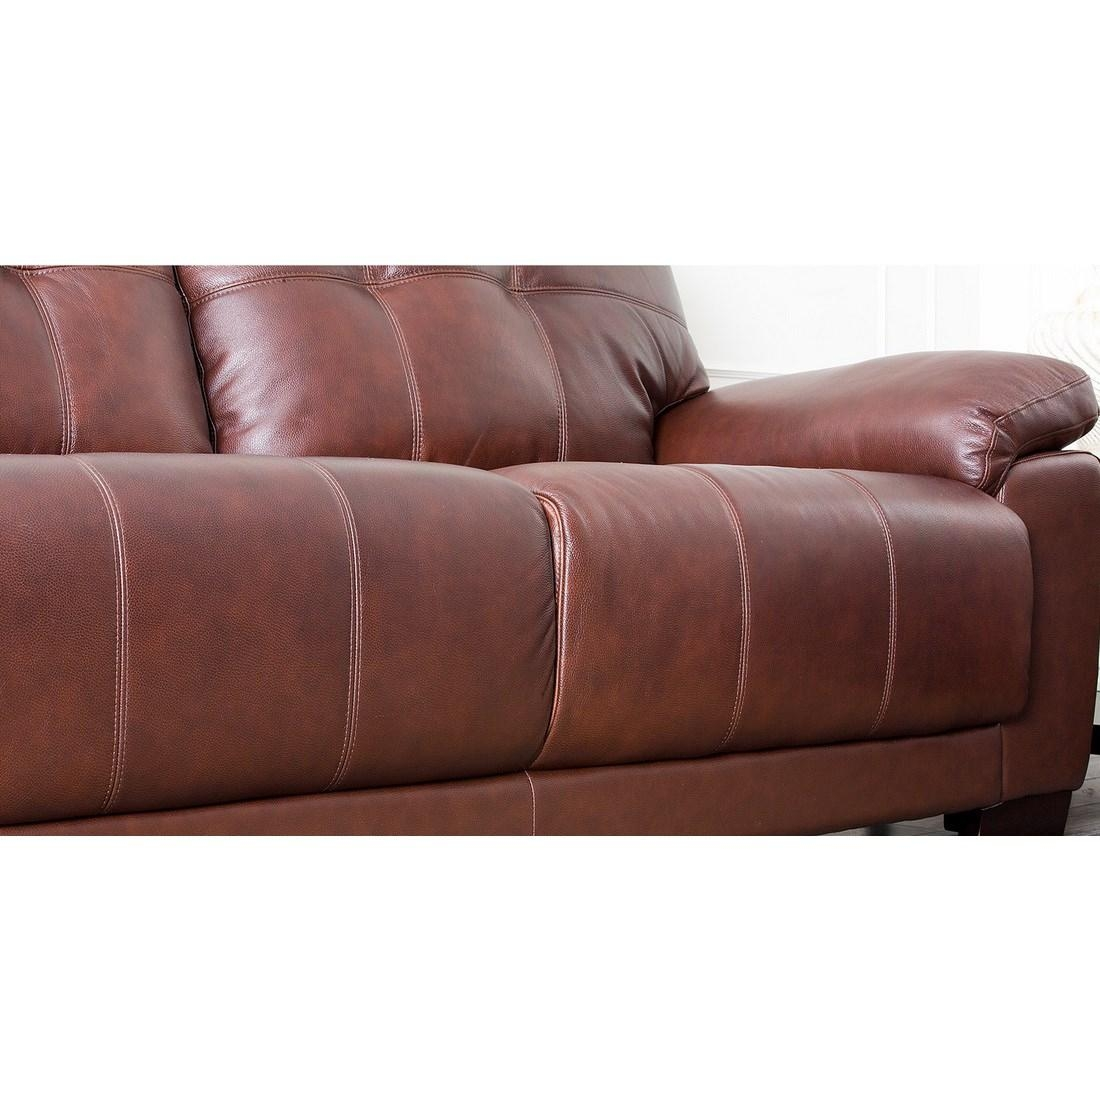 Abbyson Living Sf 5902 Cst 3 Florence Two Tone Brown Leather Sofa Throughout Florence Leather Sofas (Image 2 of 20)